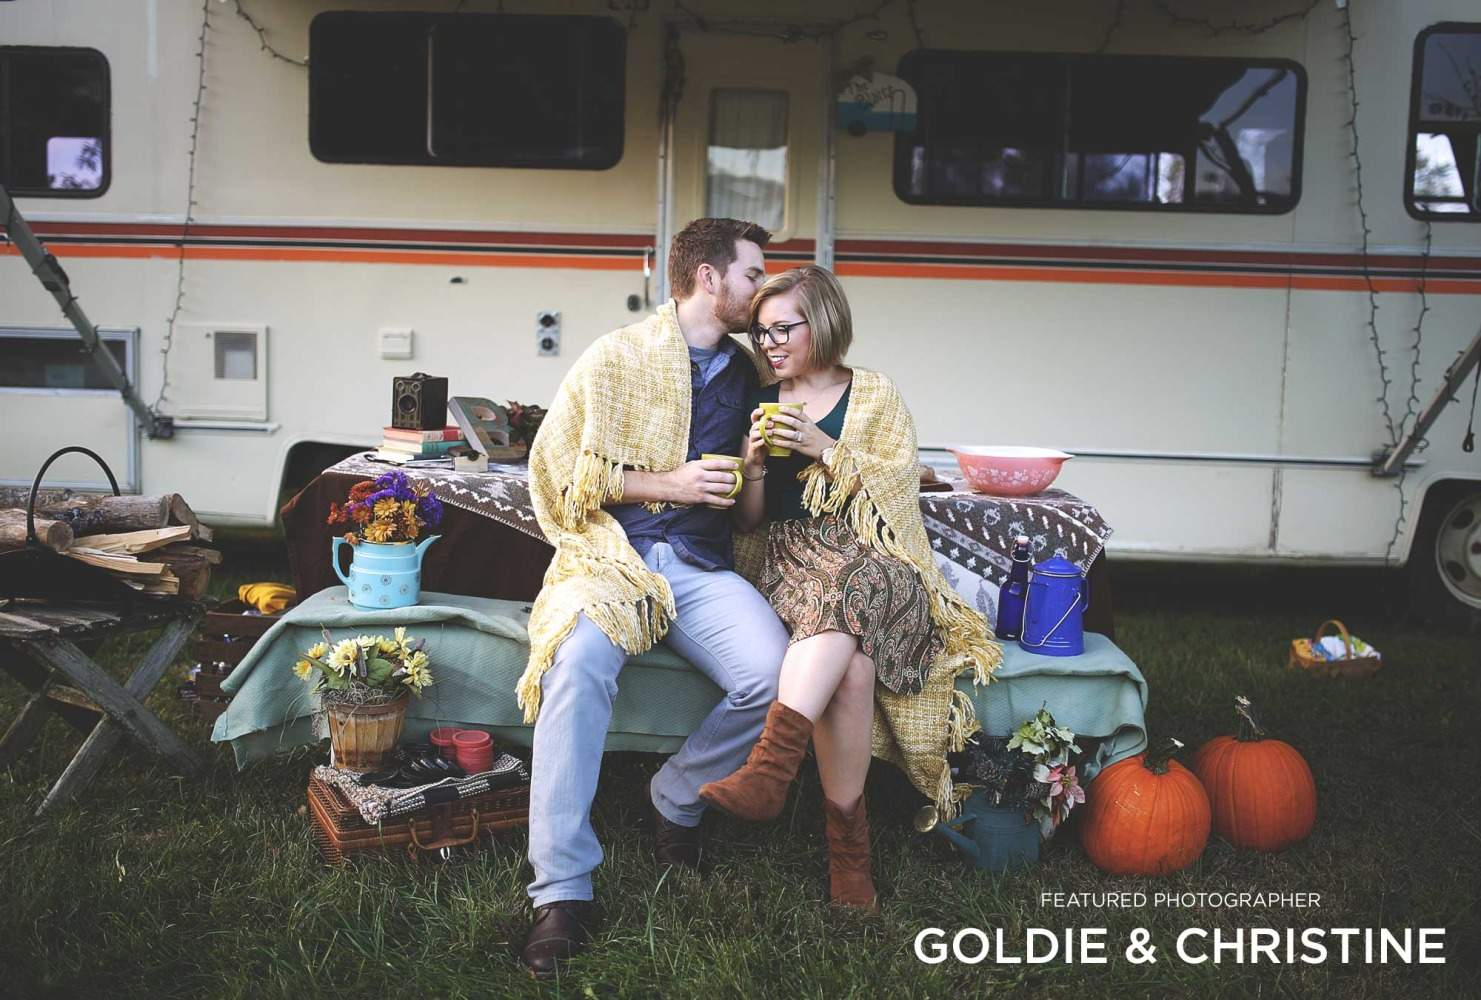 Goldie and Christine - Featured Photographer